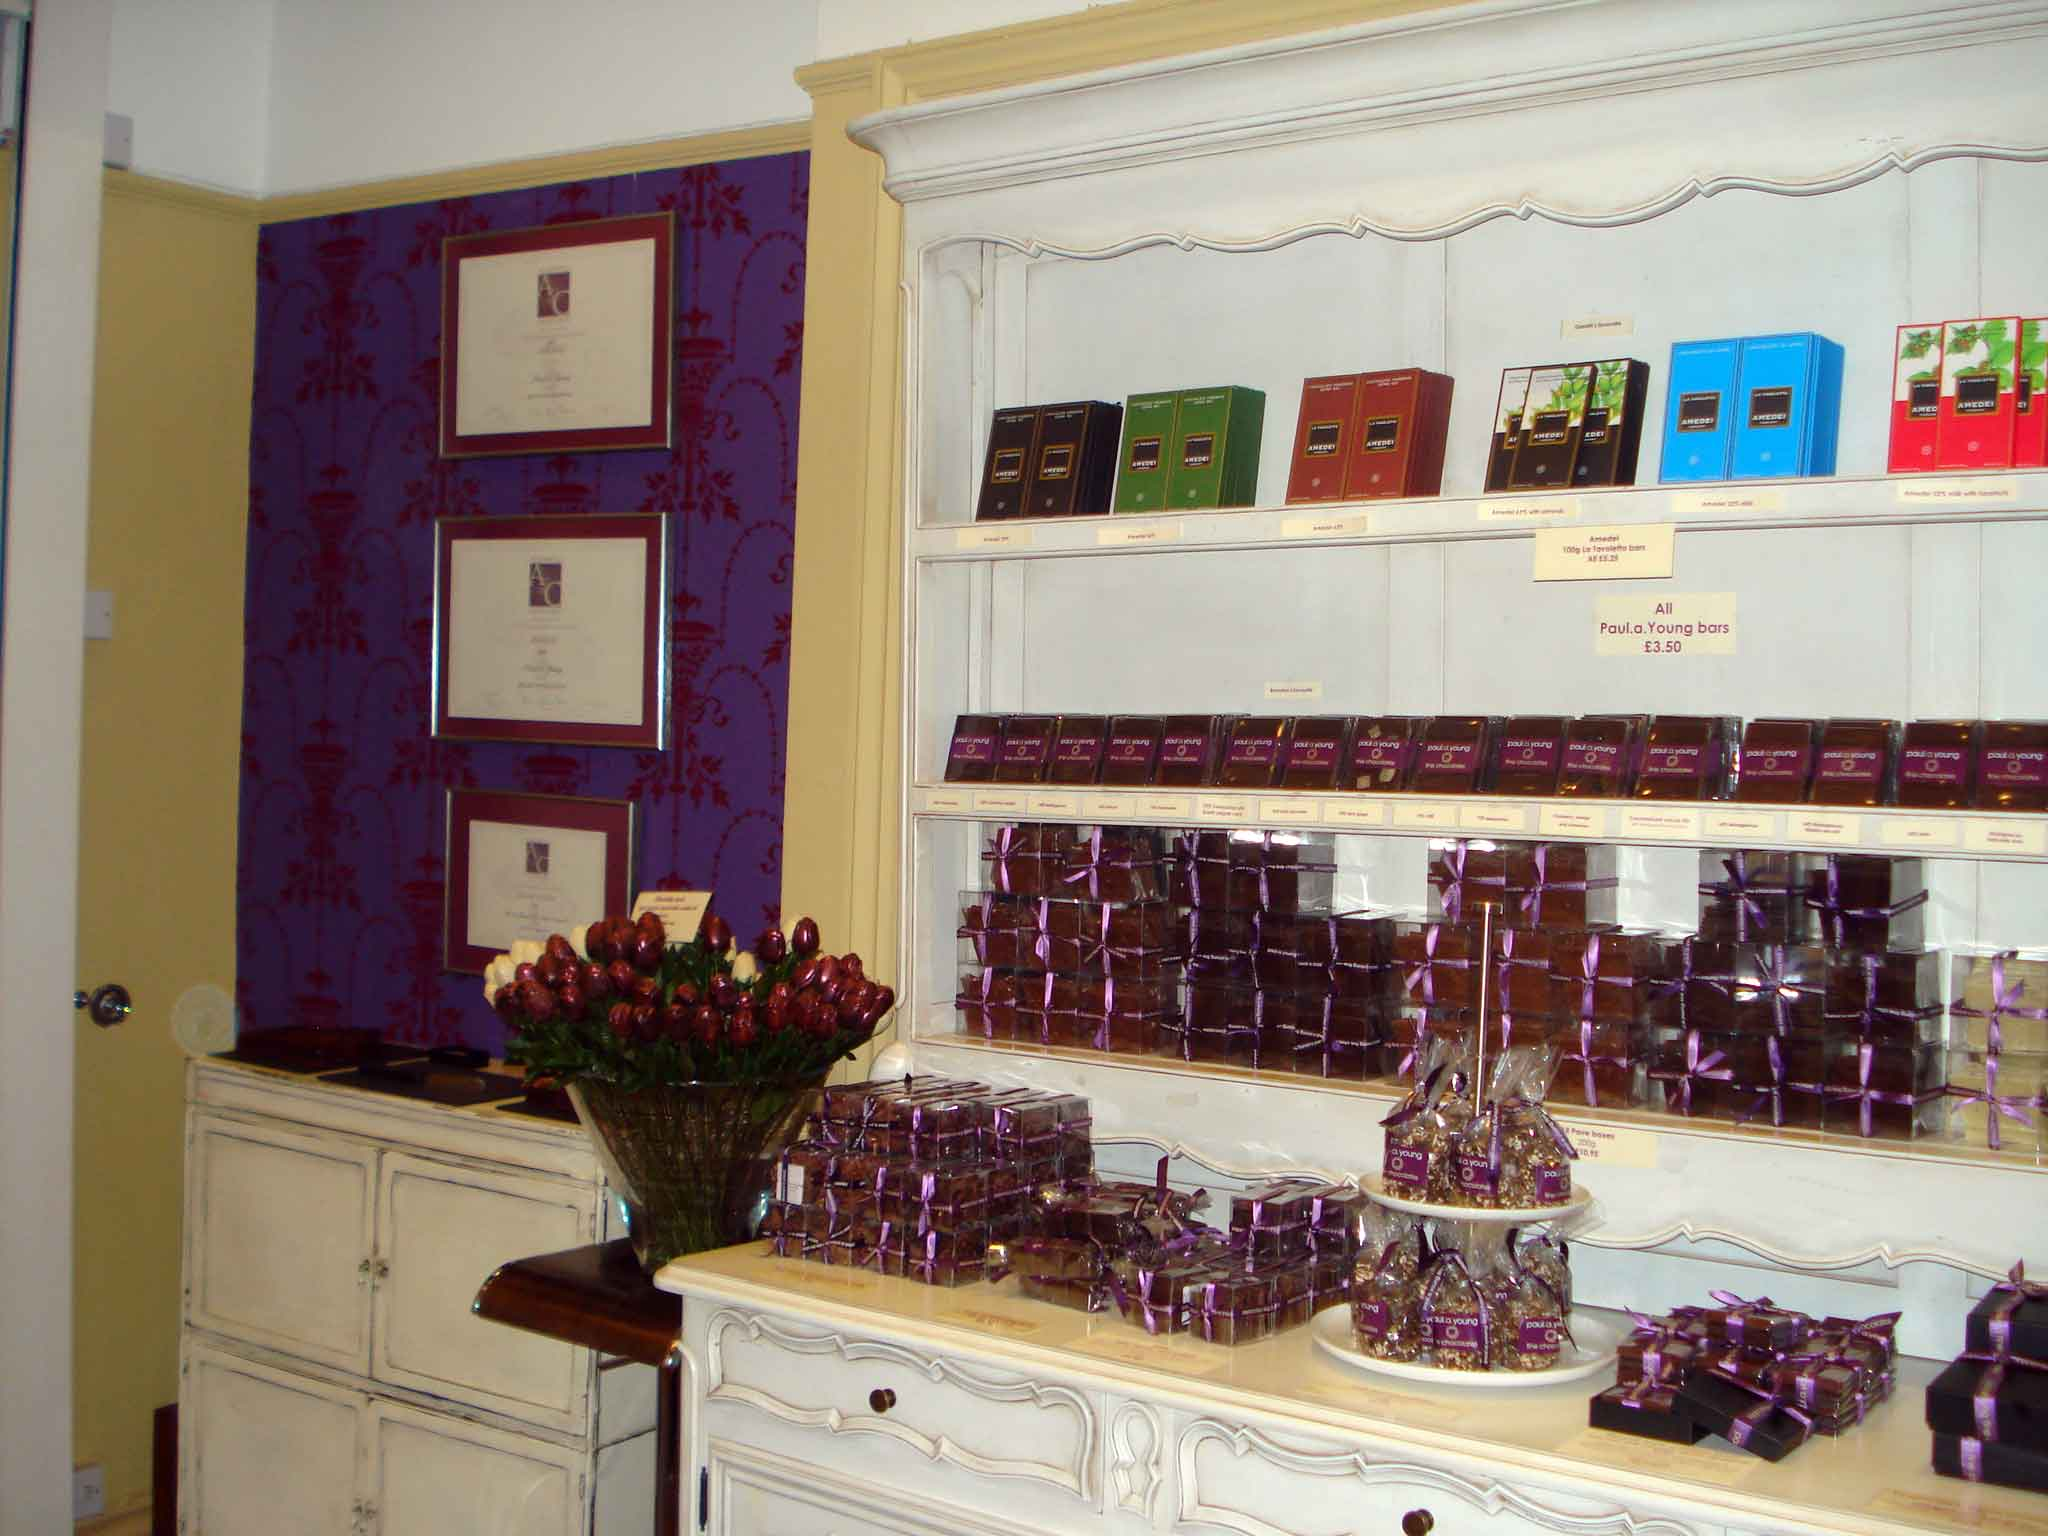 Another Chocolate Shop ...